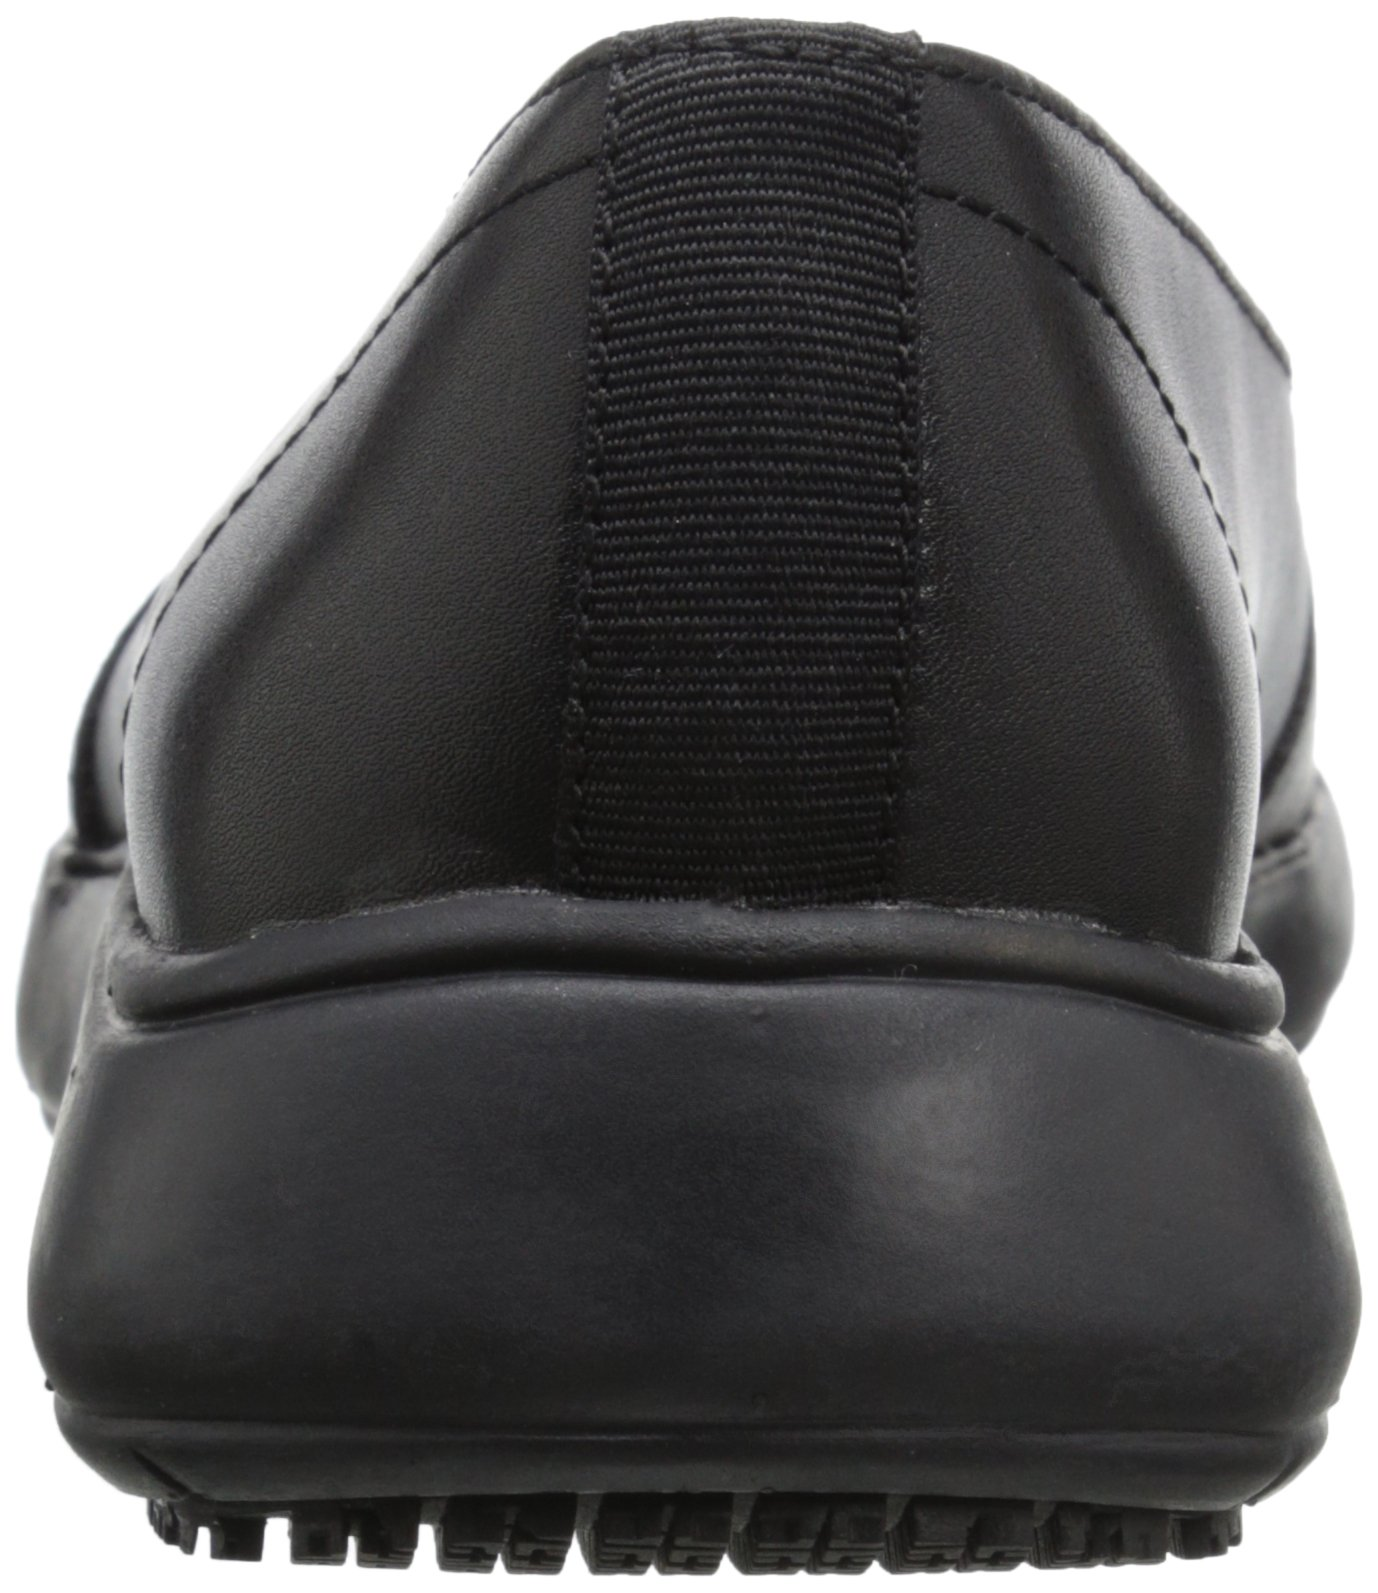 Dr. Scholl's Women's Lauri Slip On, Black, 8 M US by Dr. Scholl's Shoes (Image #2)